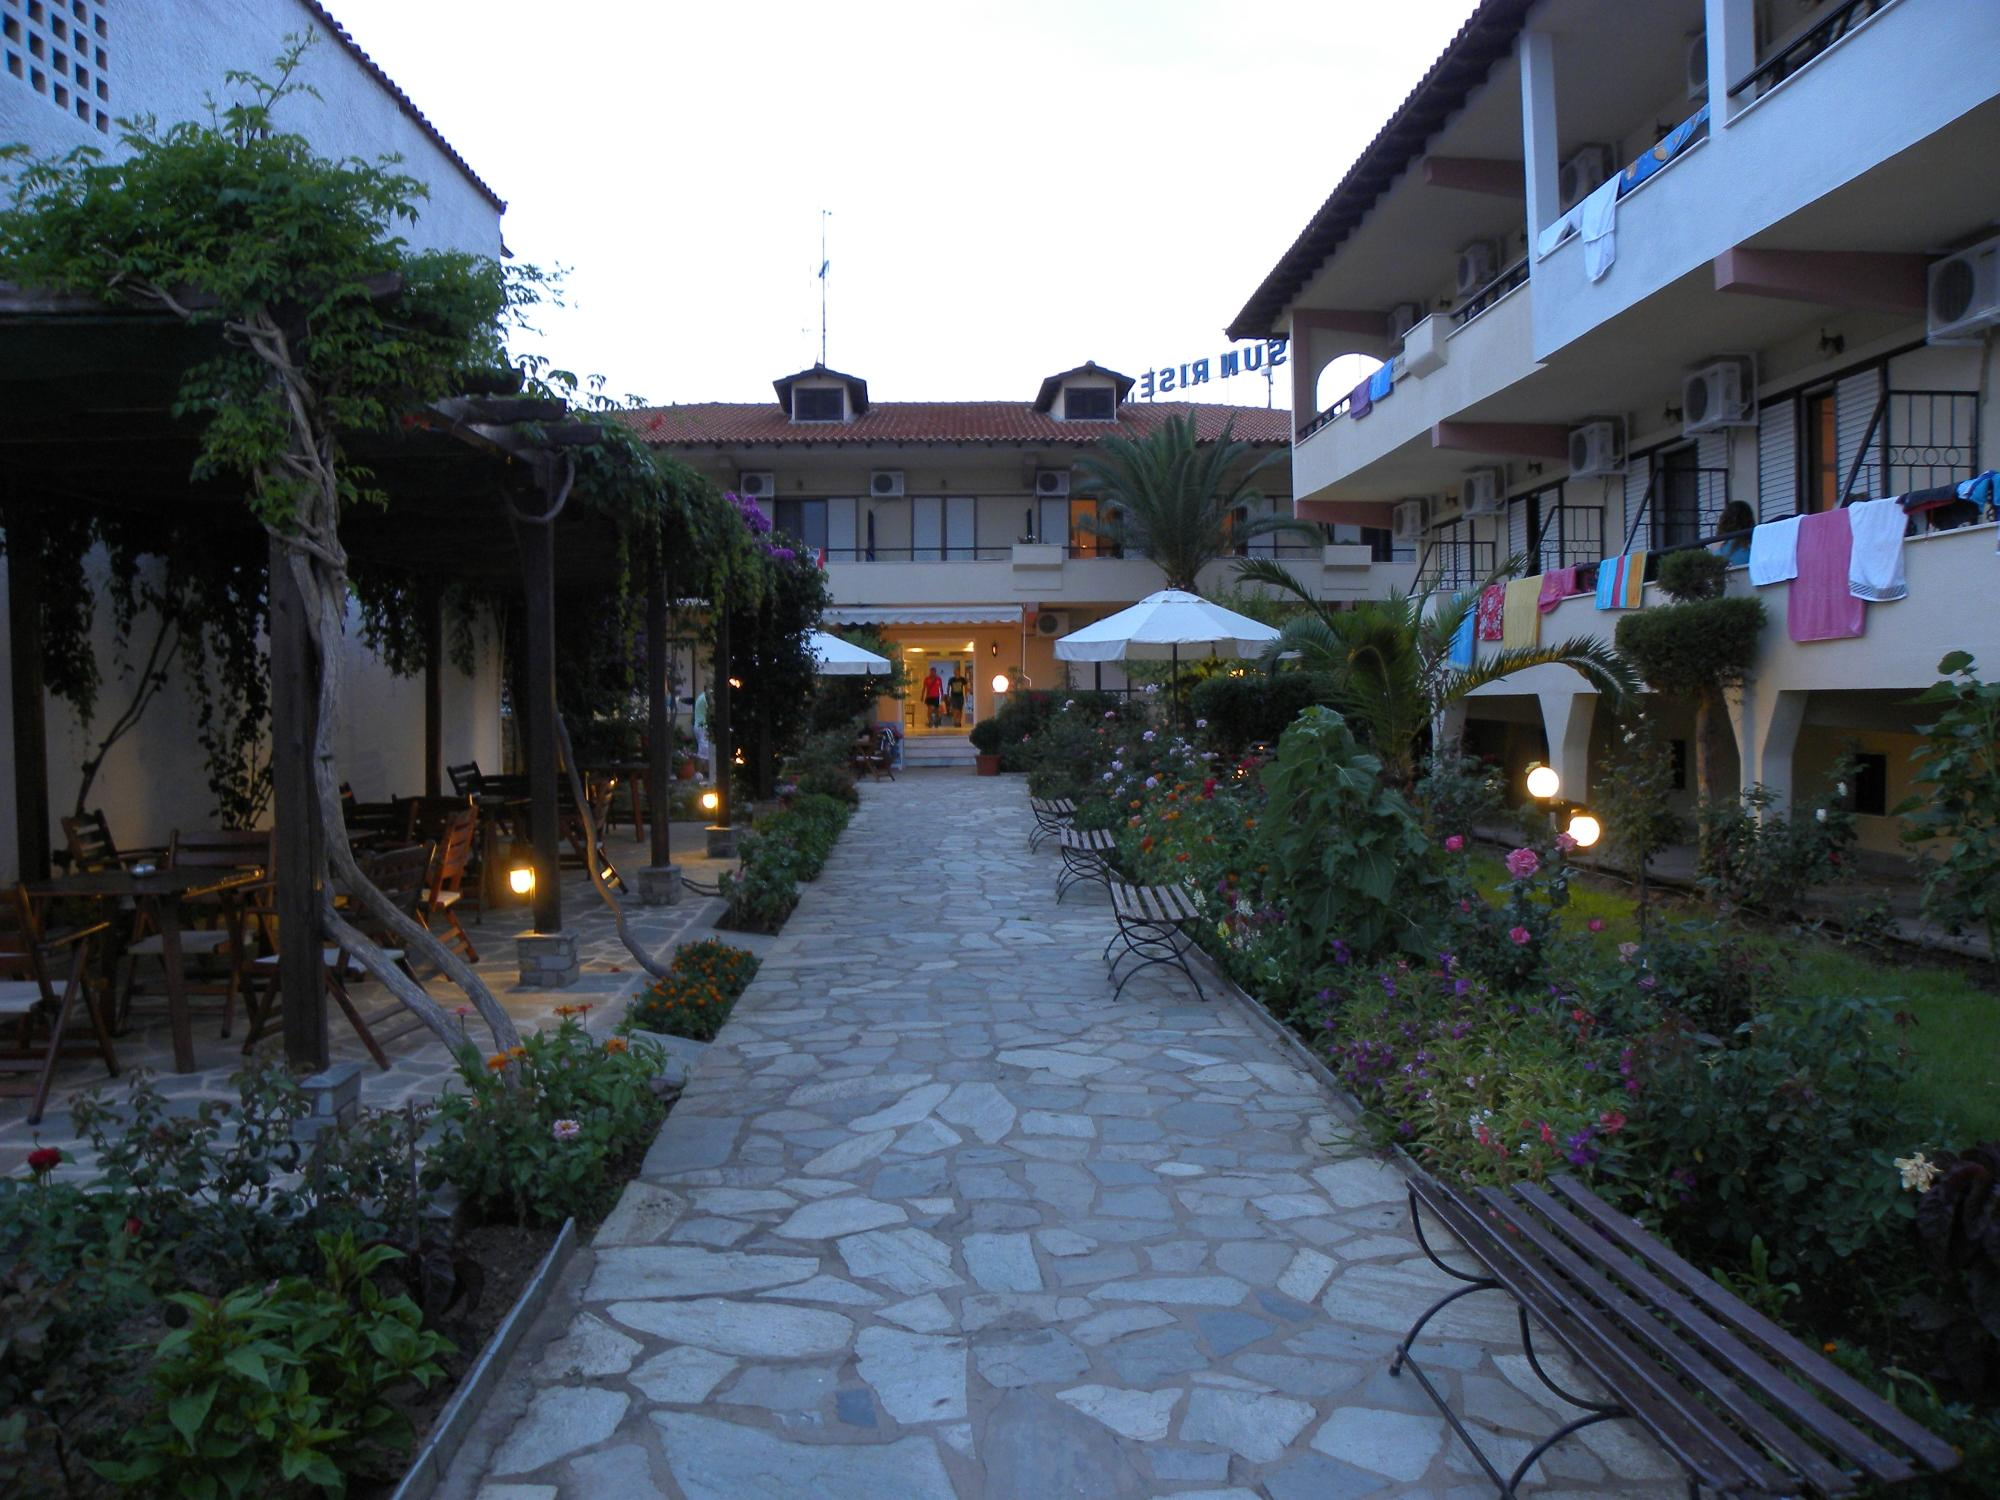 Ammouliani Greece  city pictures gallery : Sunrise Hotel Ammouliani, Greece Halkidiki 2016 Prices & Hotel ...